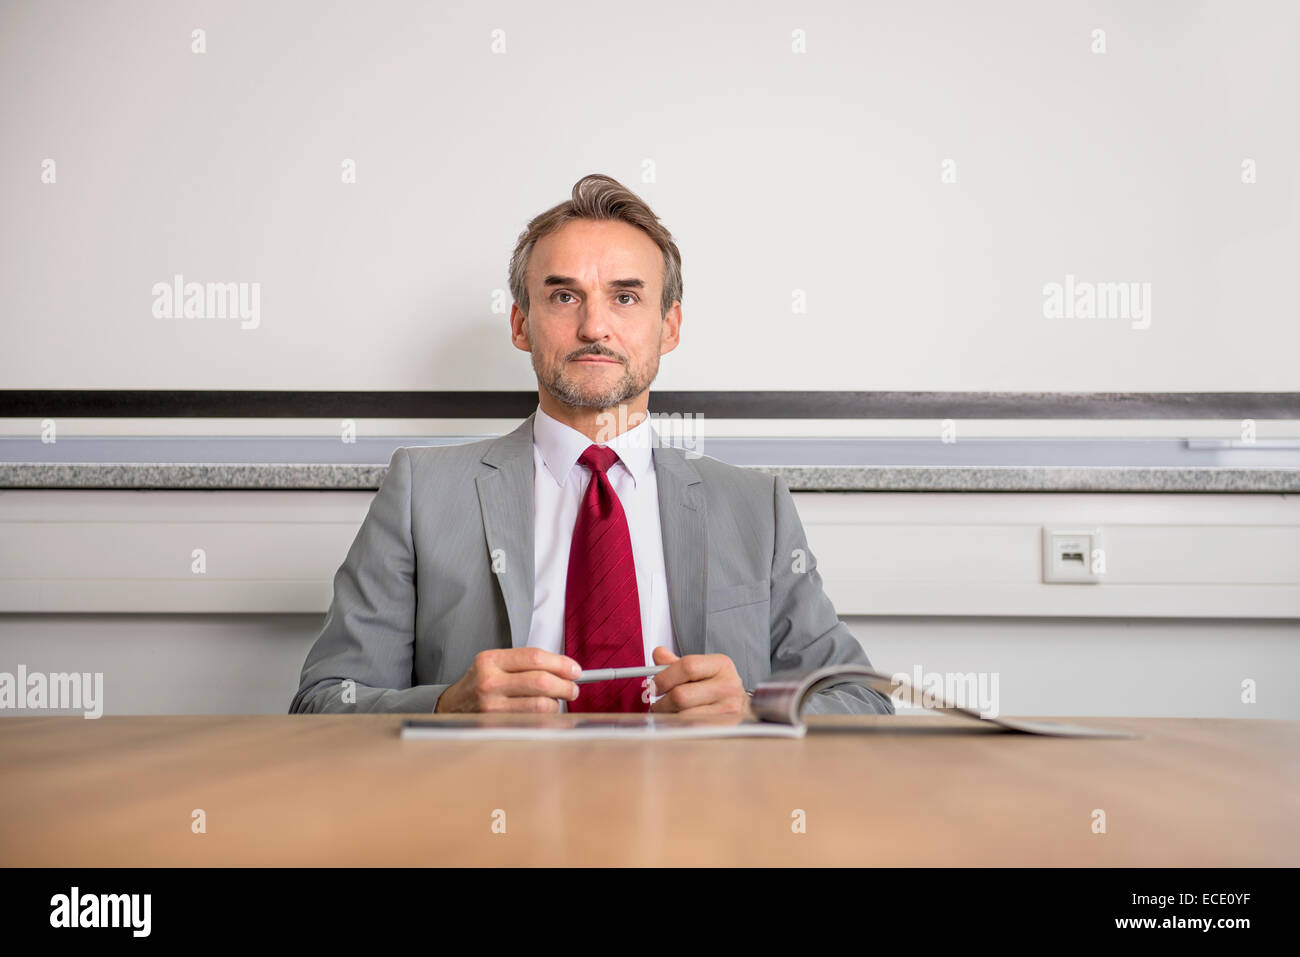 Portrait businessman suit table office manager - Stock Image